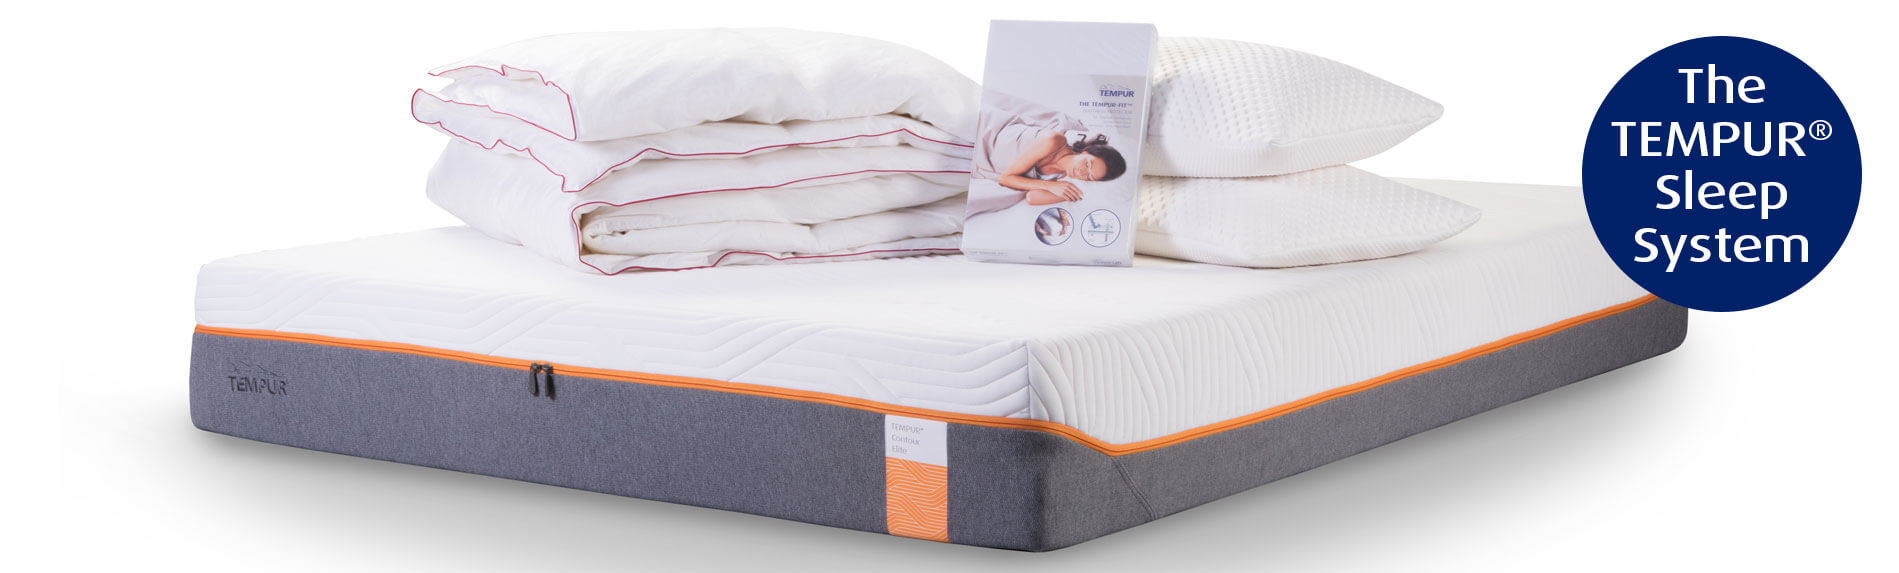 What Do We Think About The Tempur Mattress